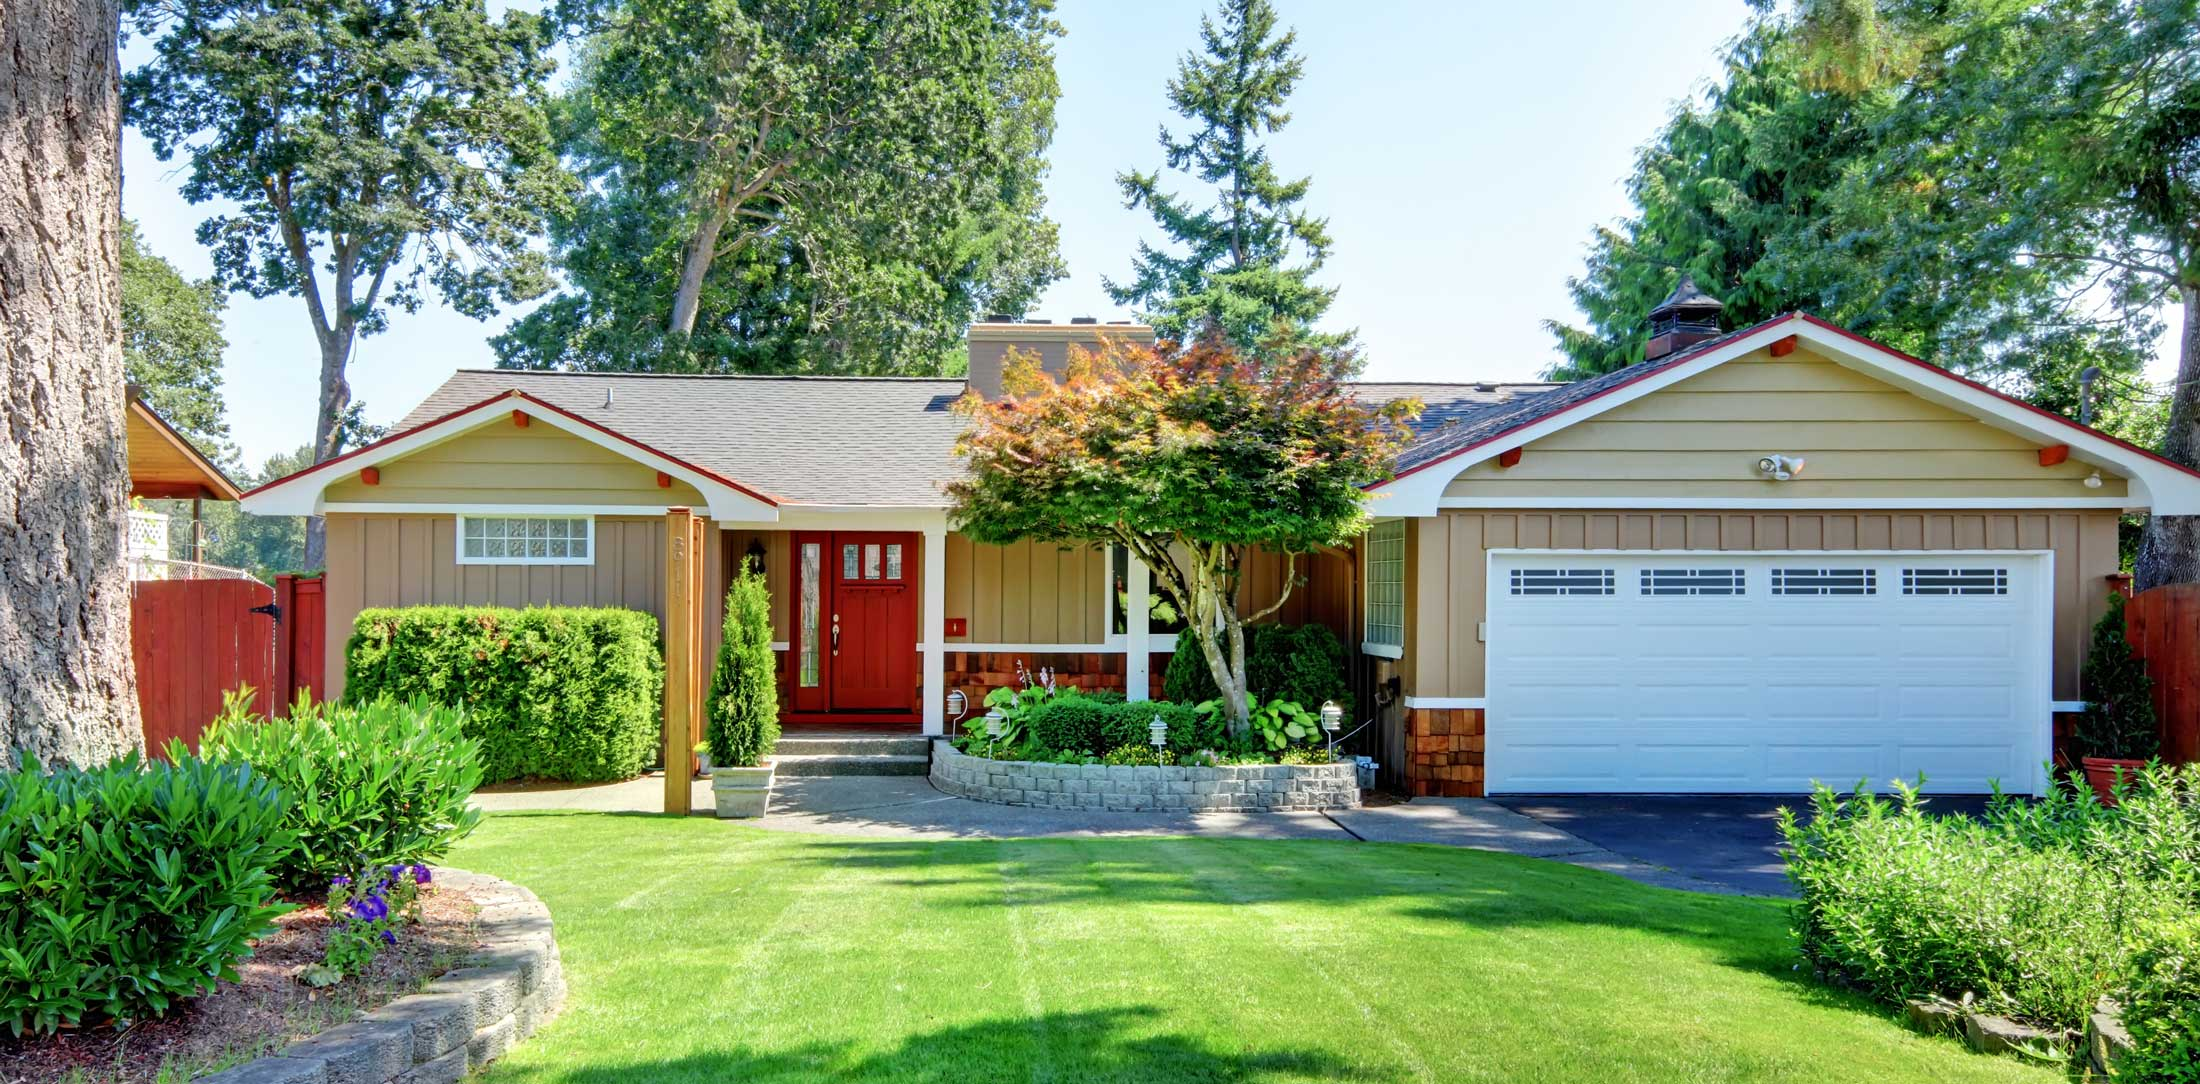 Decision Point Home Inspections